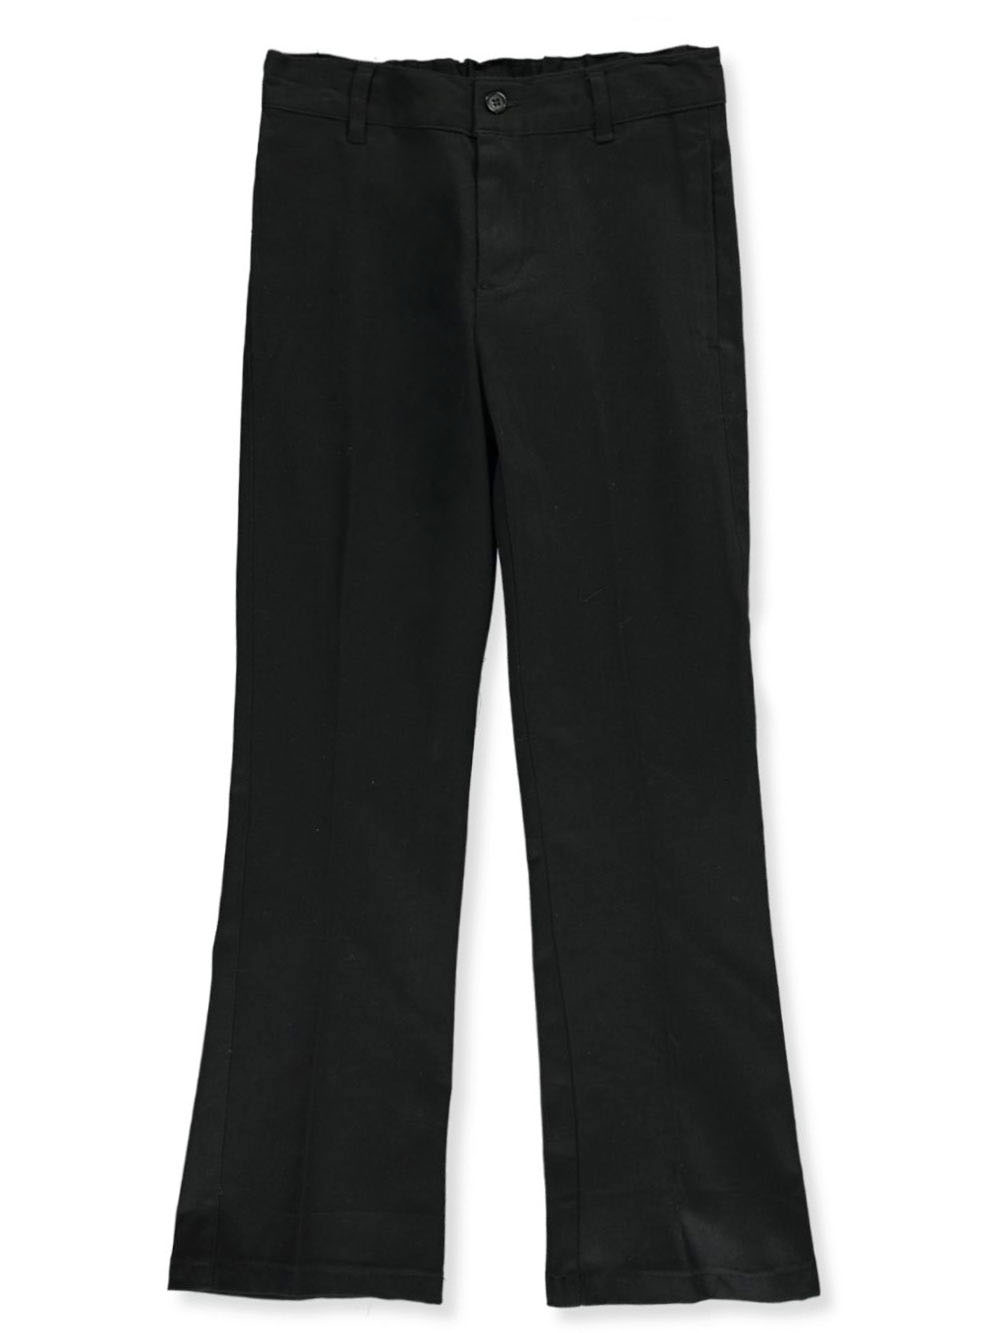 Size 7-8 Pants for Girls